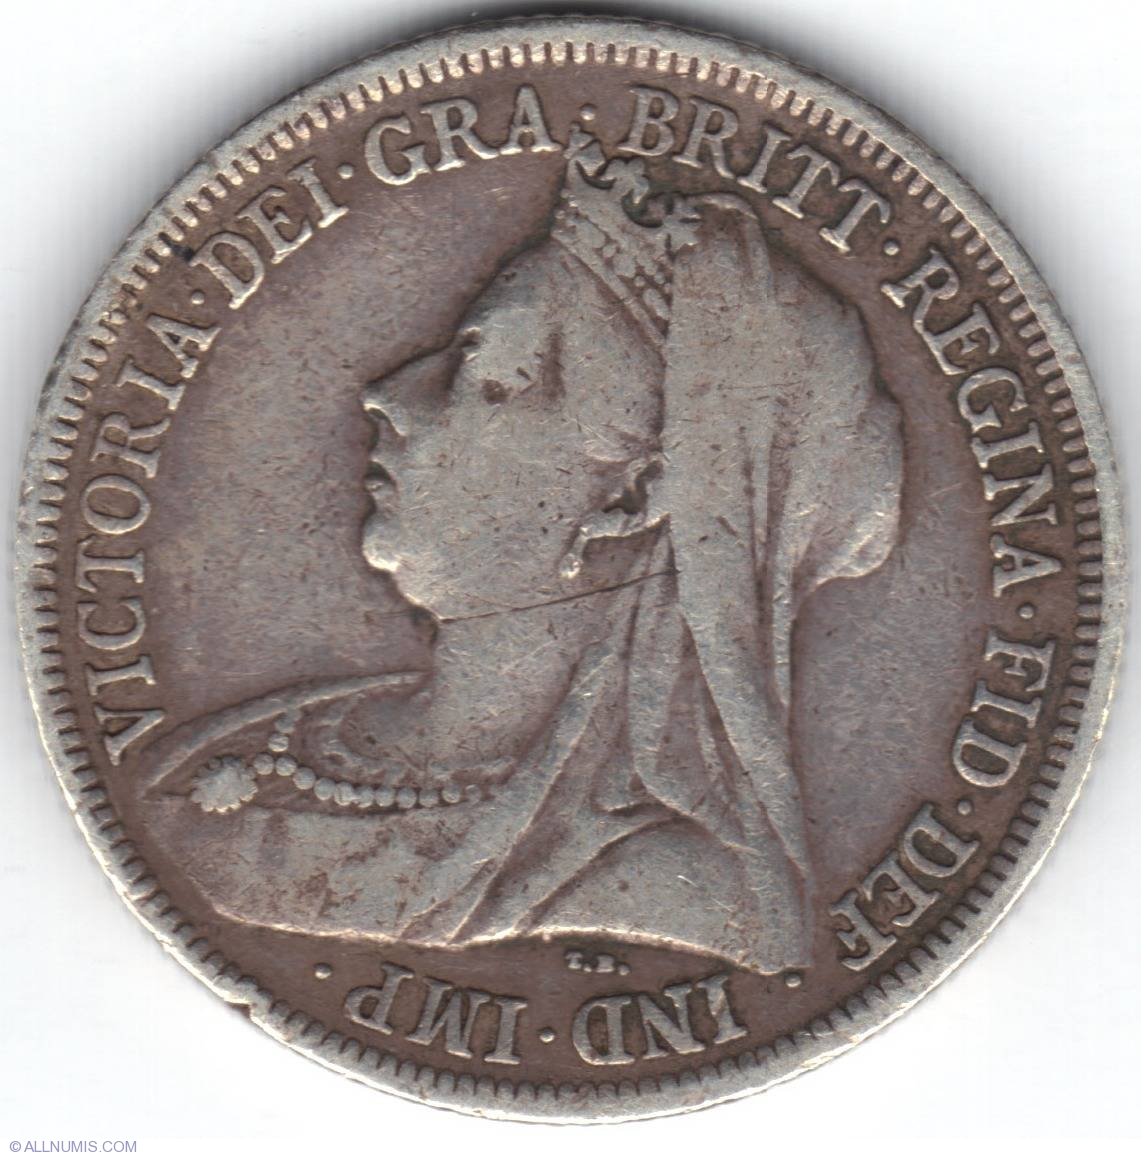 Coin Of 1 Shilling 1900 From Great Britain Id 14032